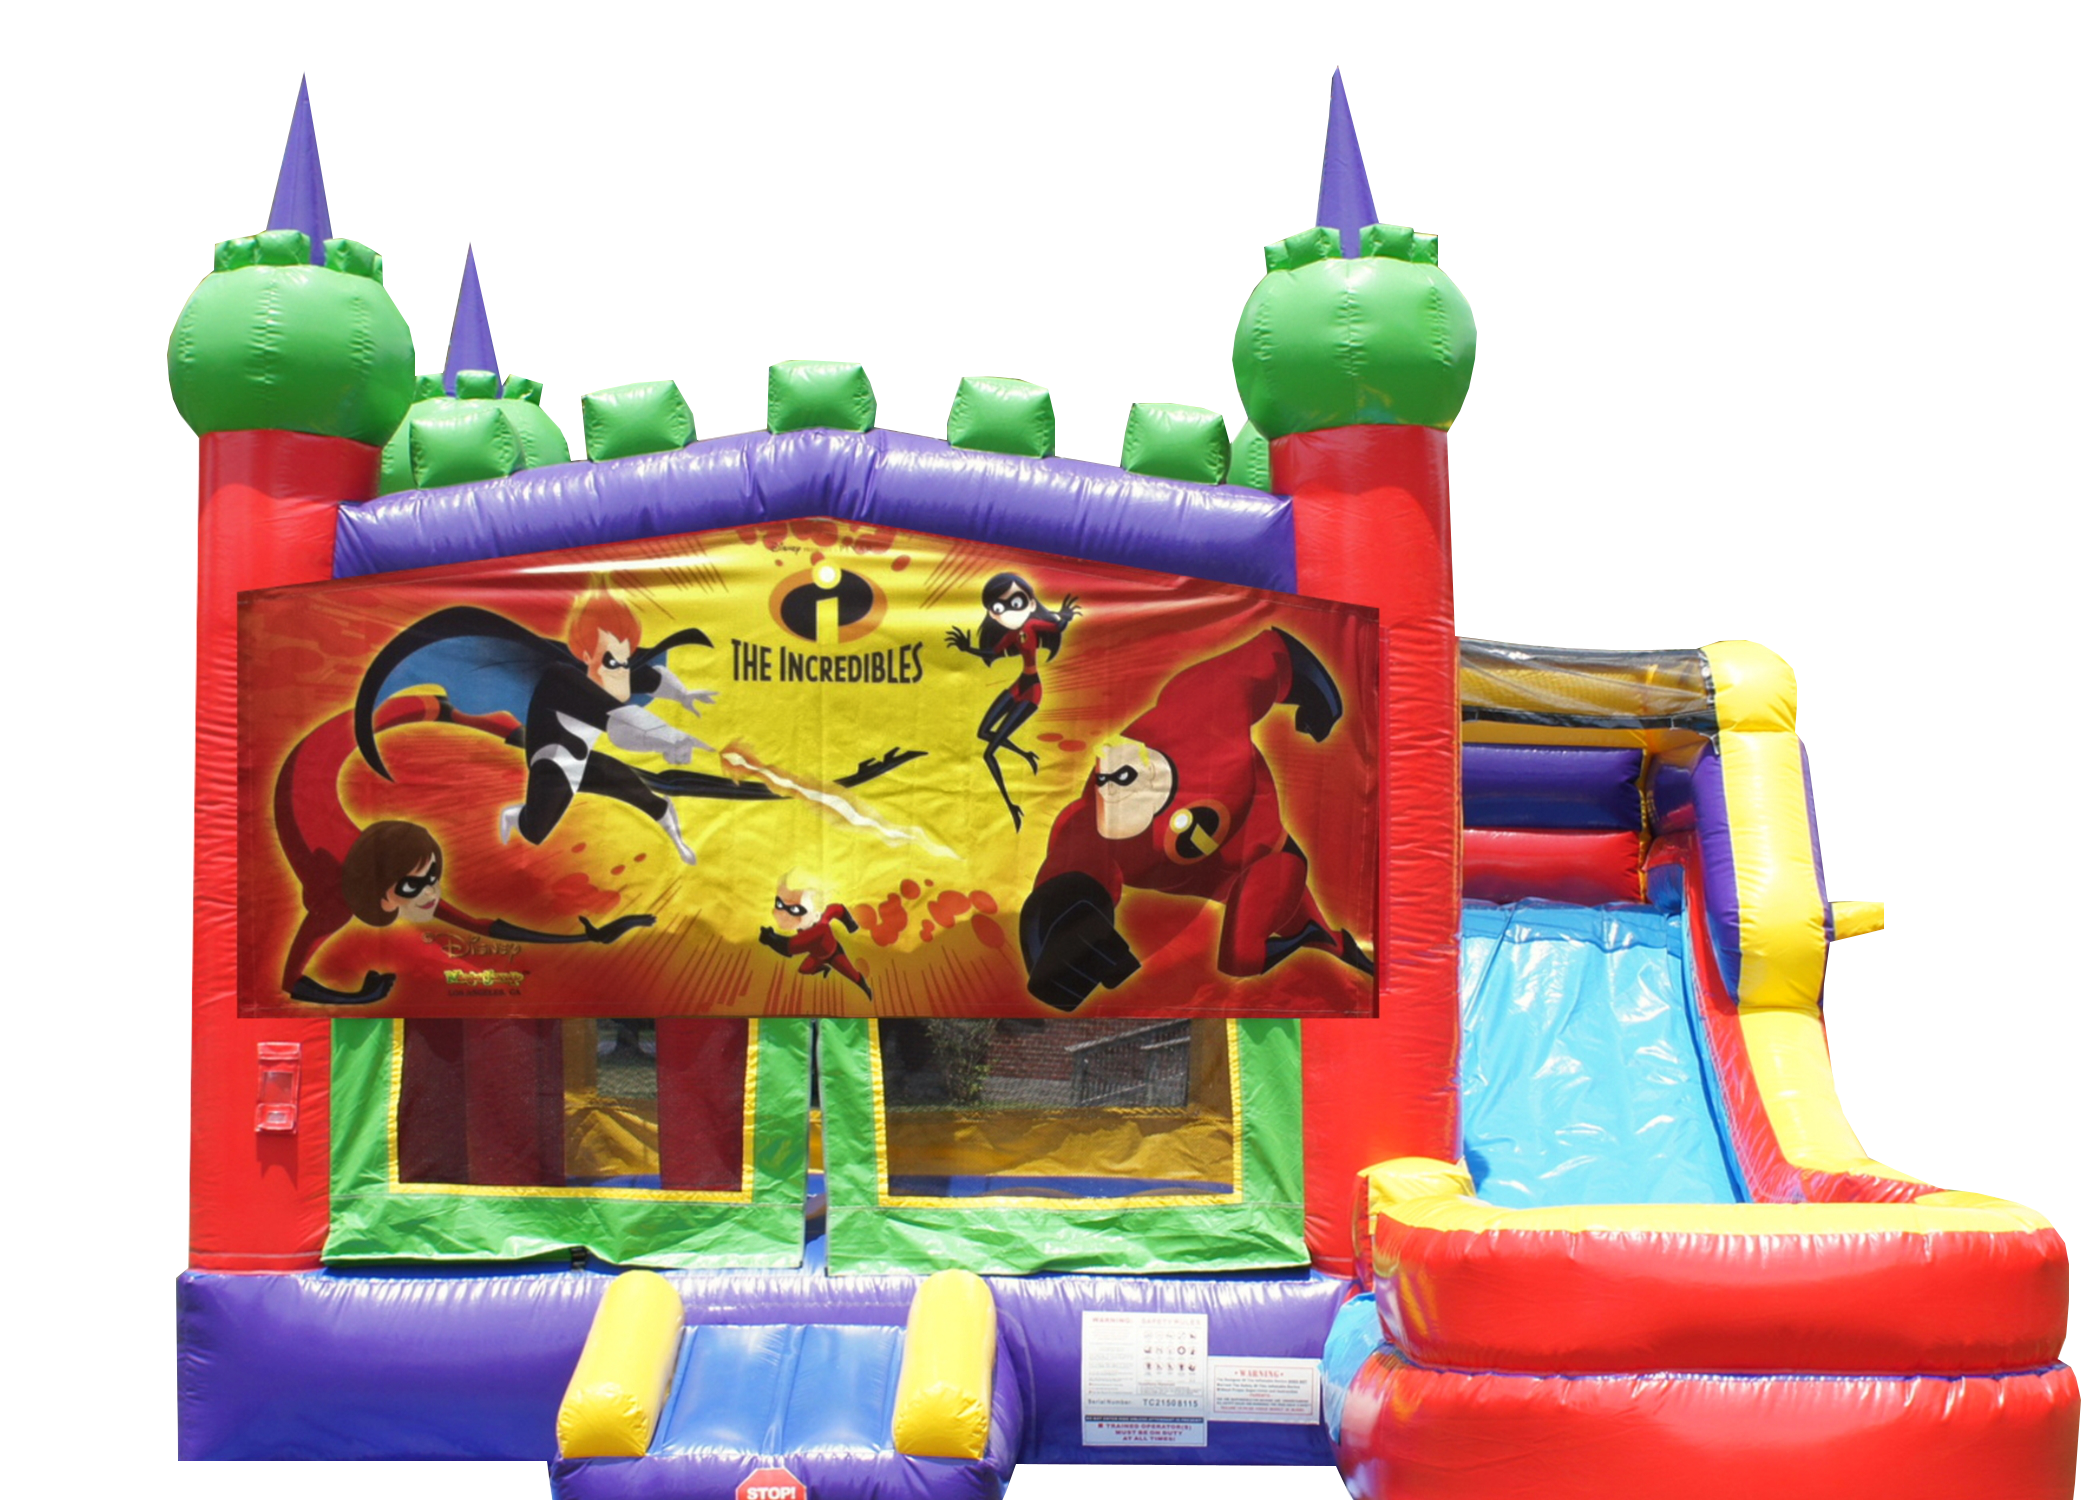 The incredibles combo bounce house Nashville